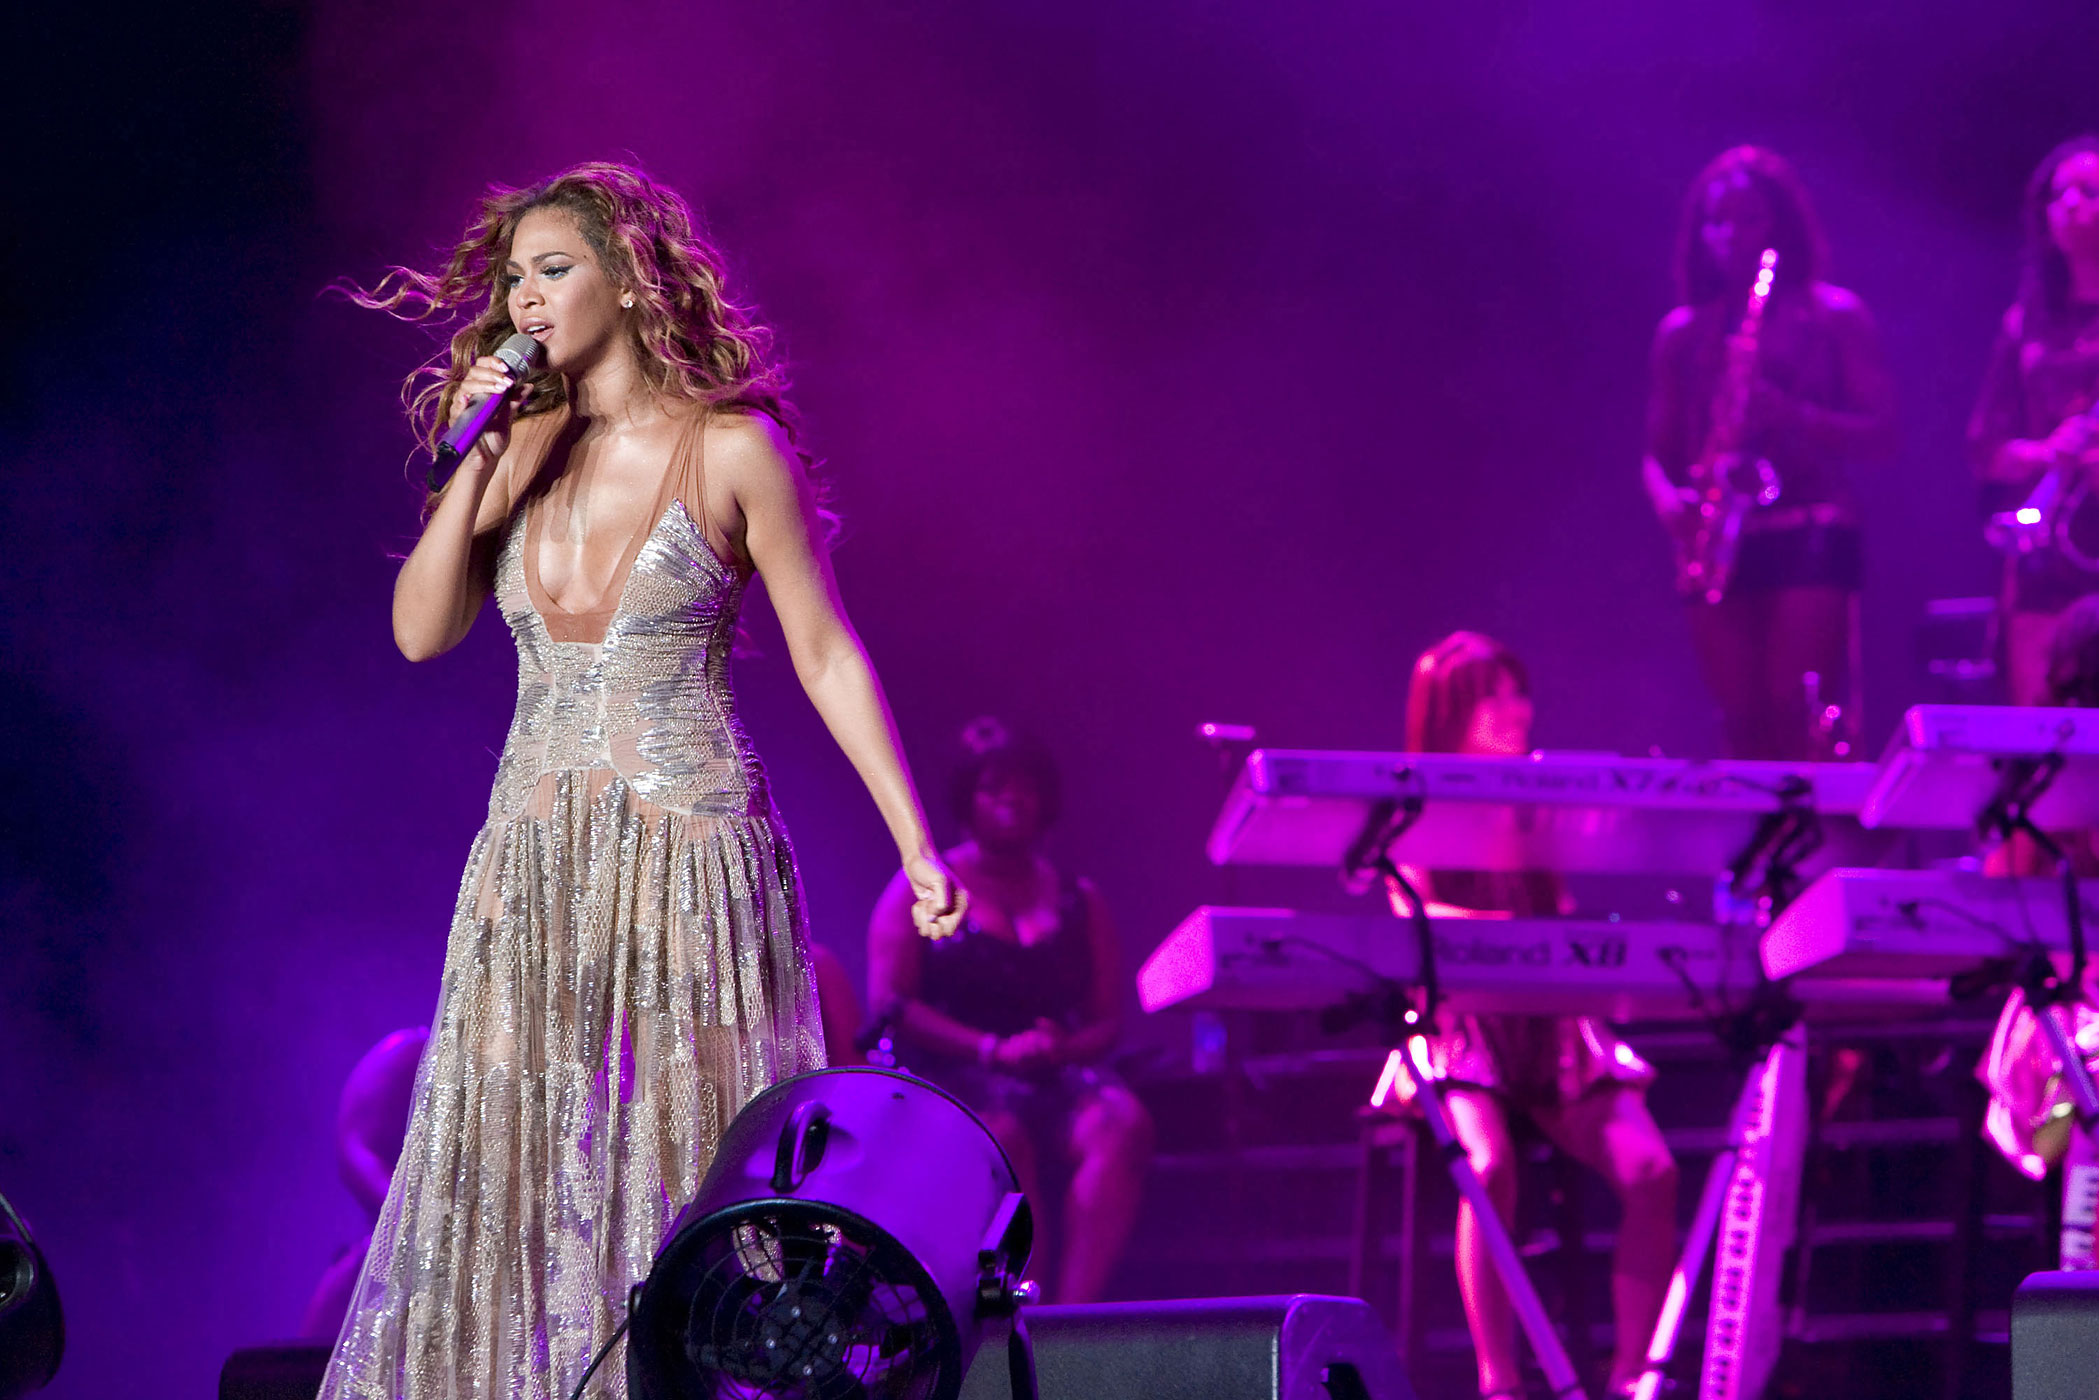 Beyonce performs on the main stage at the 13th Annual 2007 Essence Music Festival presented by Coca-Cola in the refurbished Louisiana Superdome in New Orleans, Louisiana.